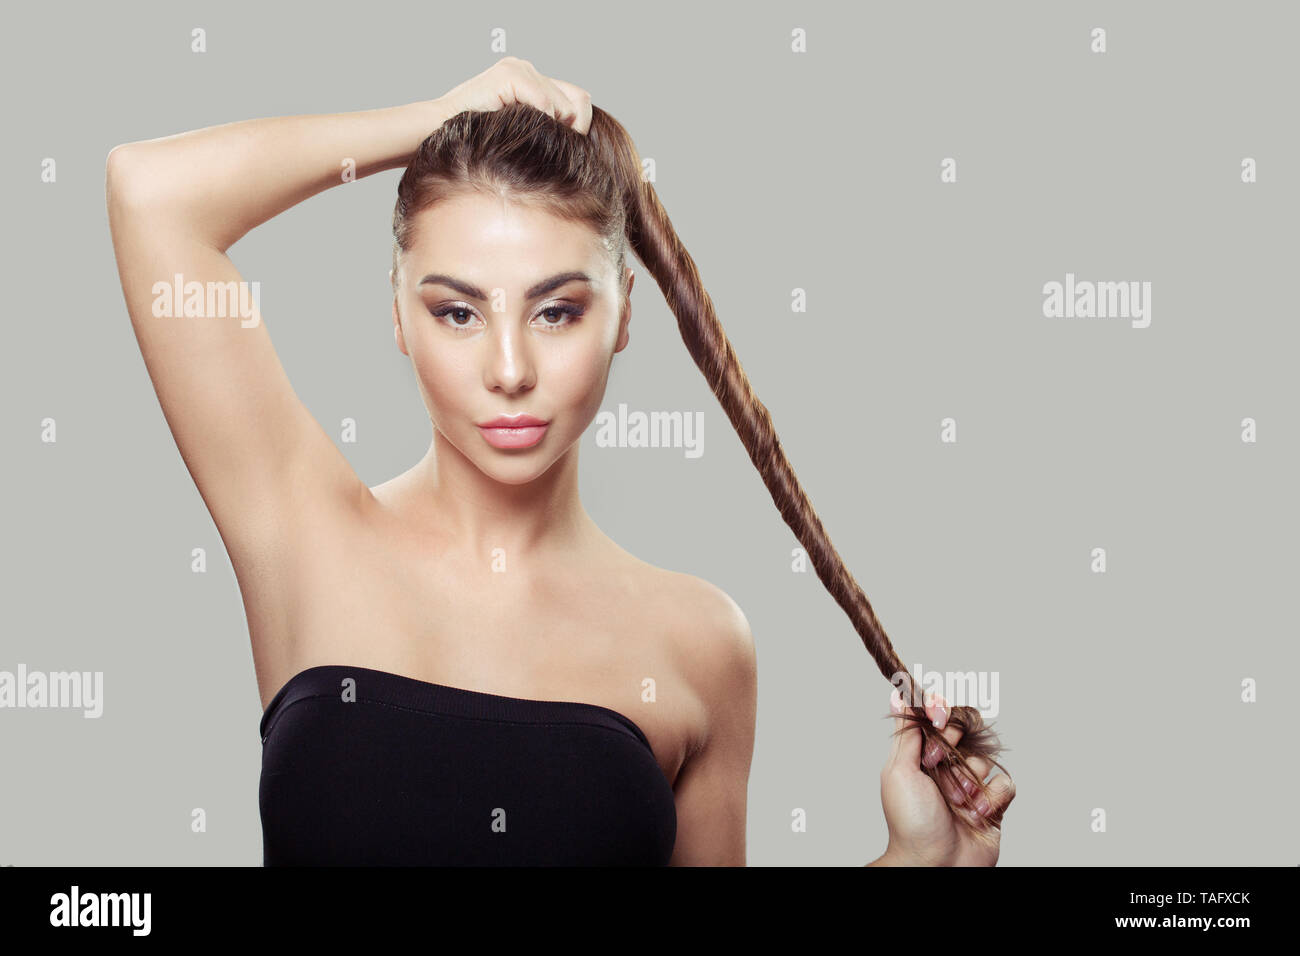 beautiful woman holding straight shiny strong hair. Gray background Stock Photo